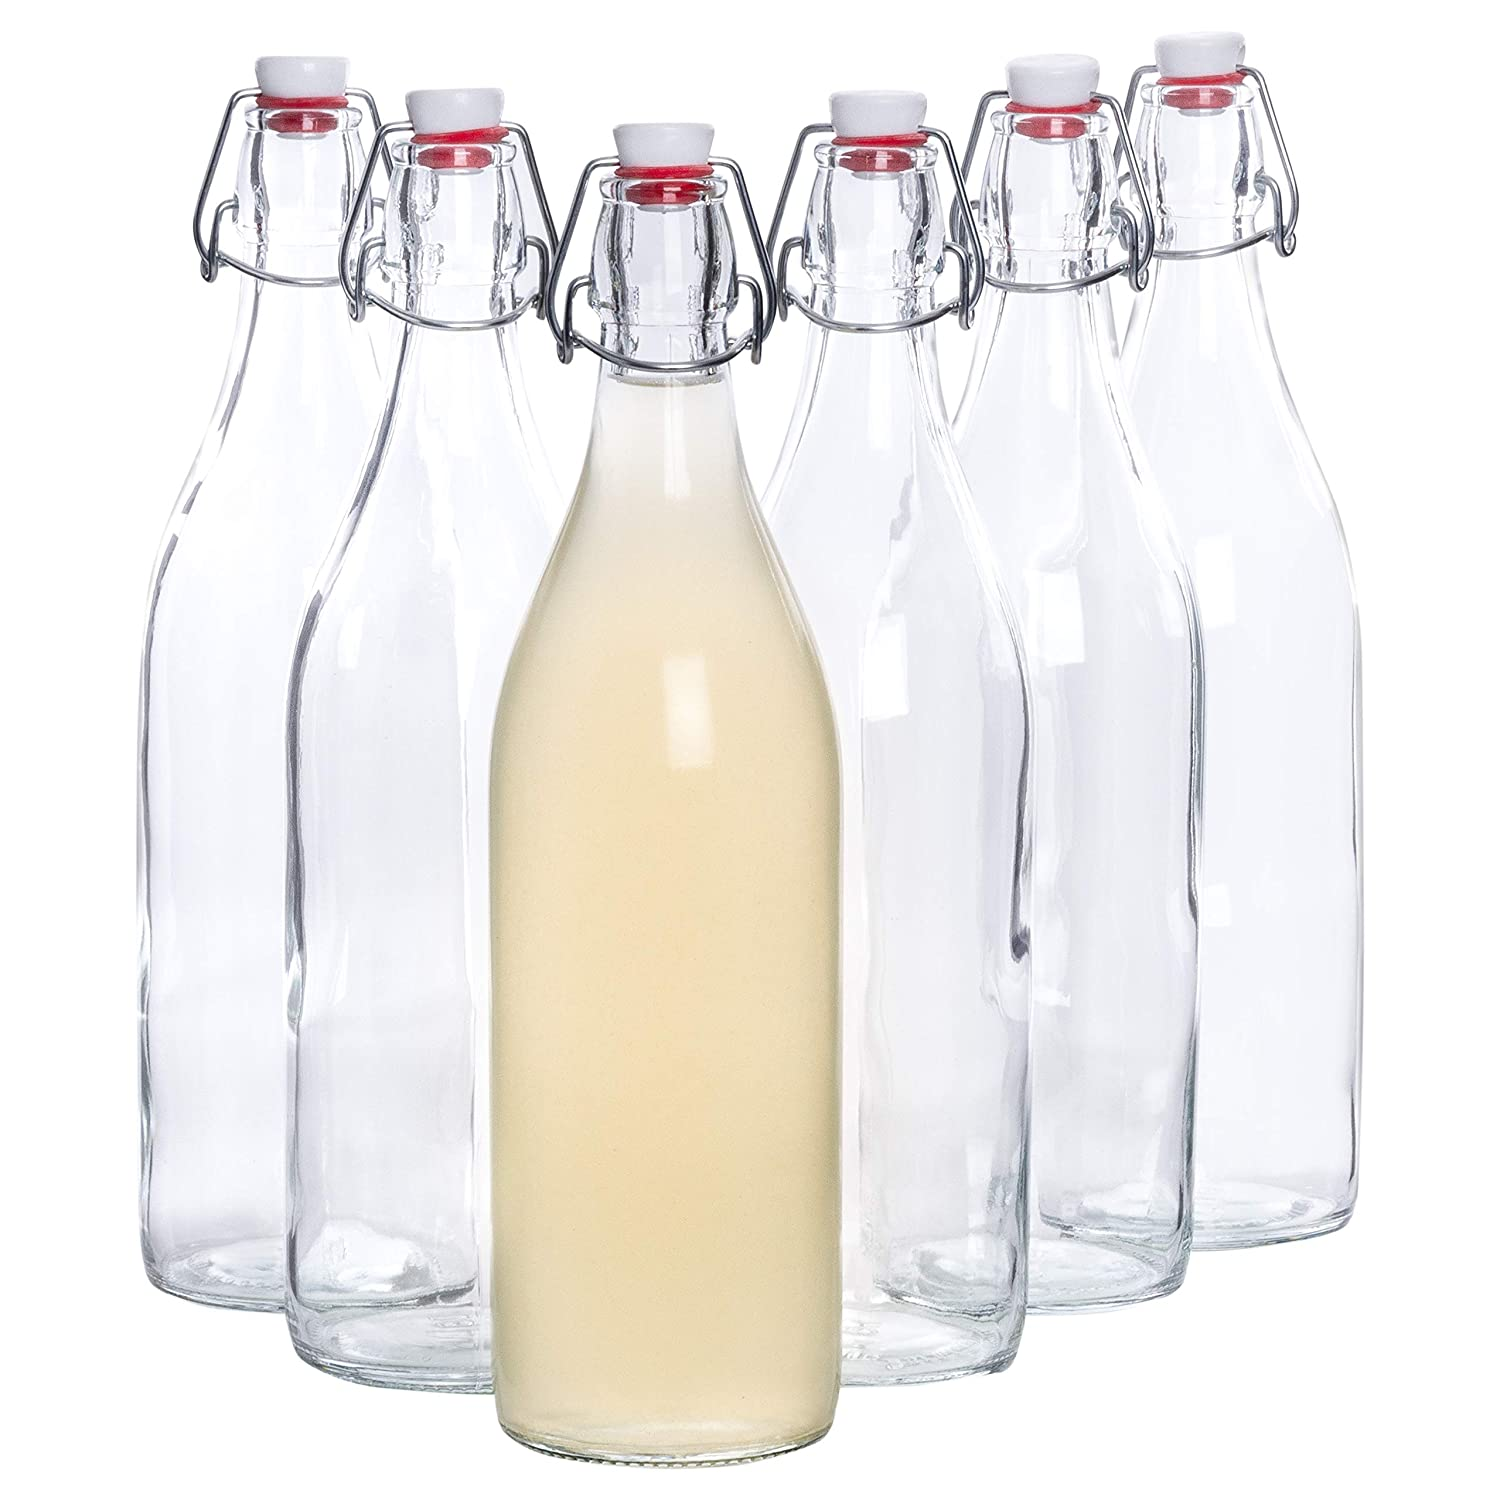 Bormioli glass bottles with cover 'Giara', 6 bottles, filling capacity 1000 ml, total height xx, perfect to add oils, to refine schnapps or to serve water, juices and wines